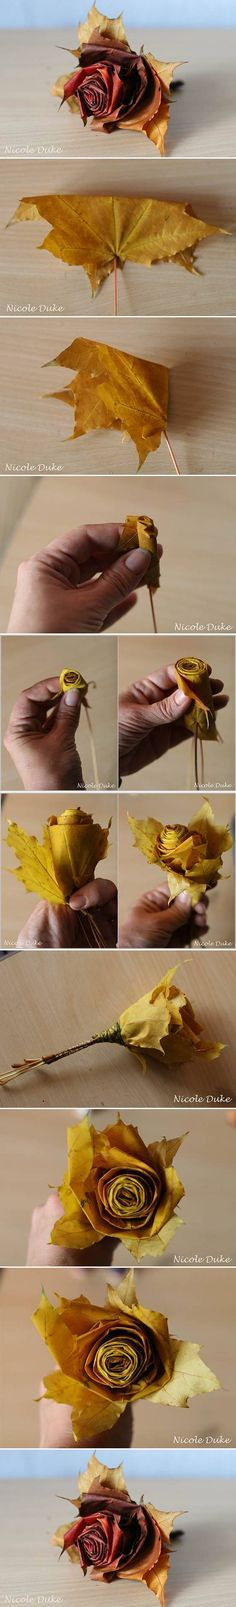 How to Make Beautiful Maple Leaf Rose #craft #leaf #decorating